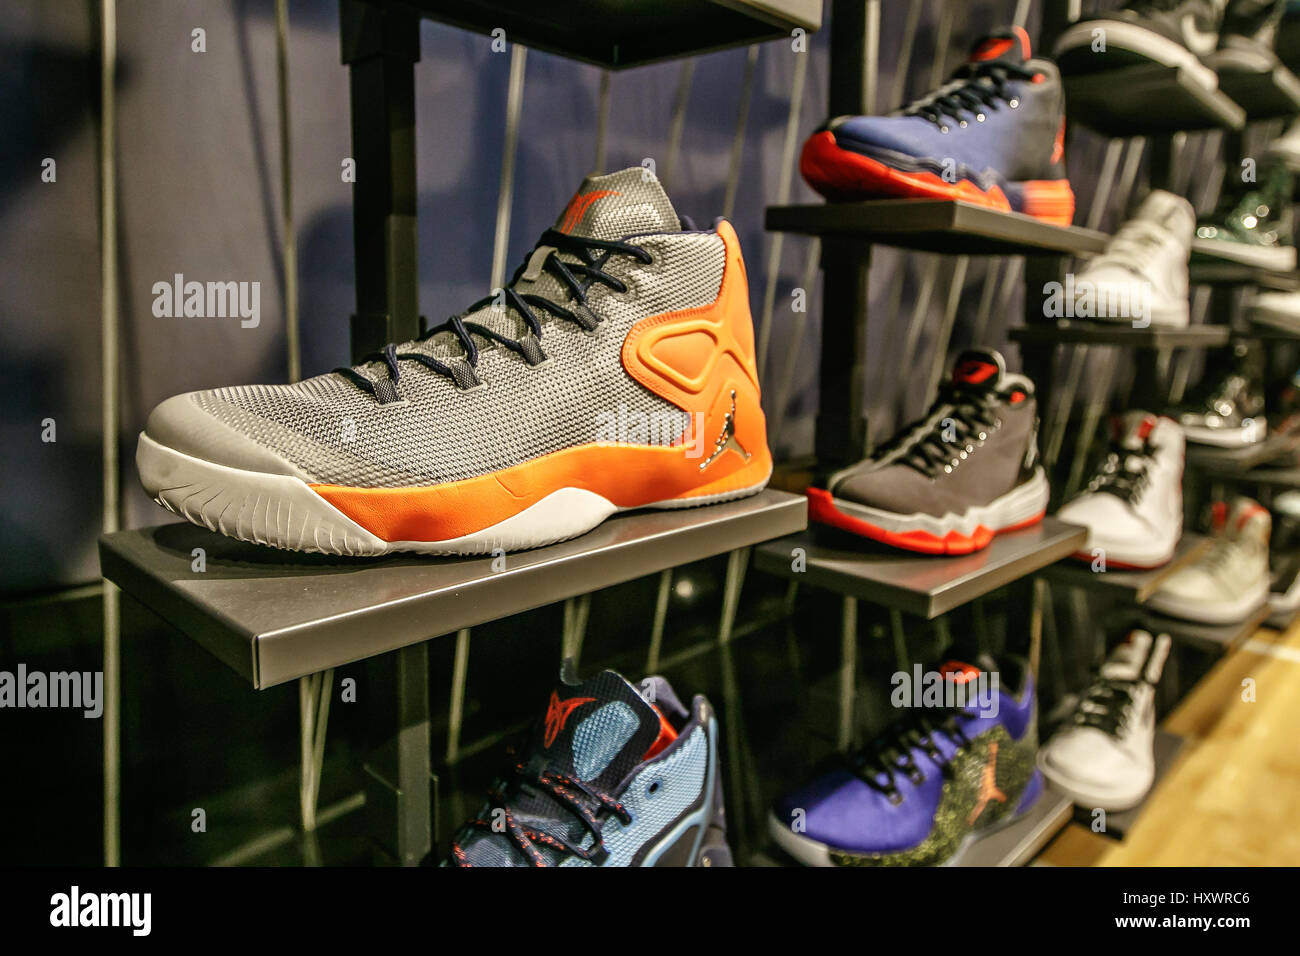 new style 3eb8f 53ca9 Assorted Air Jordan basketball shoes for sale in the NBA store in Manhattan.